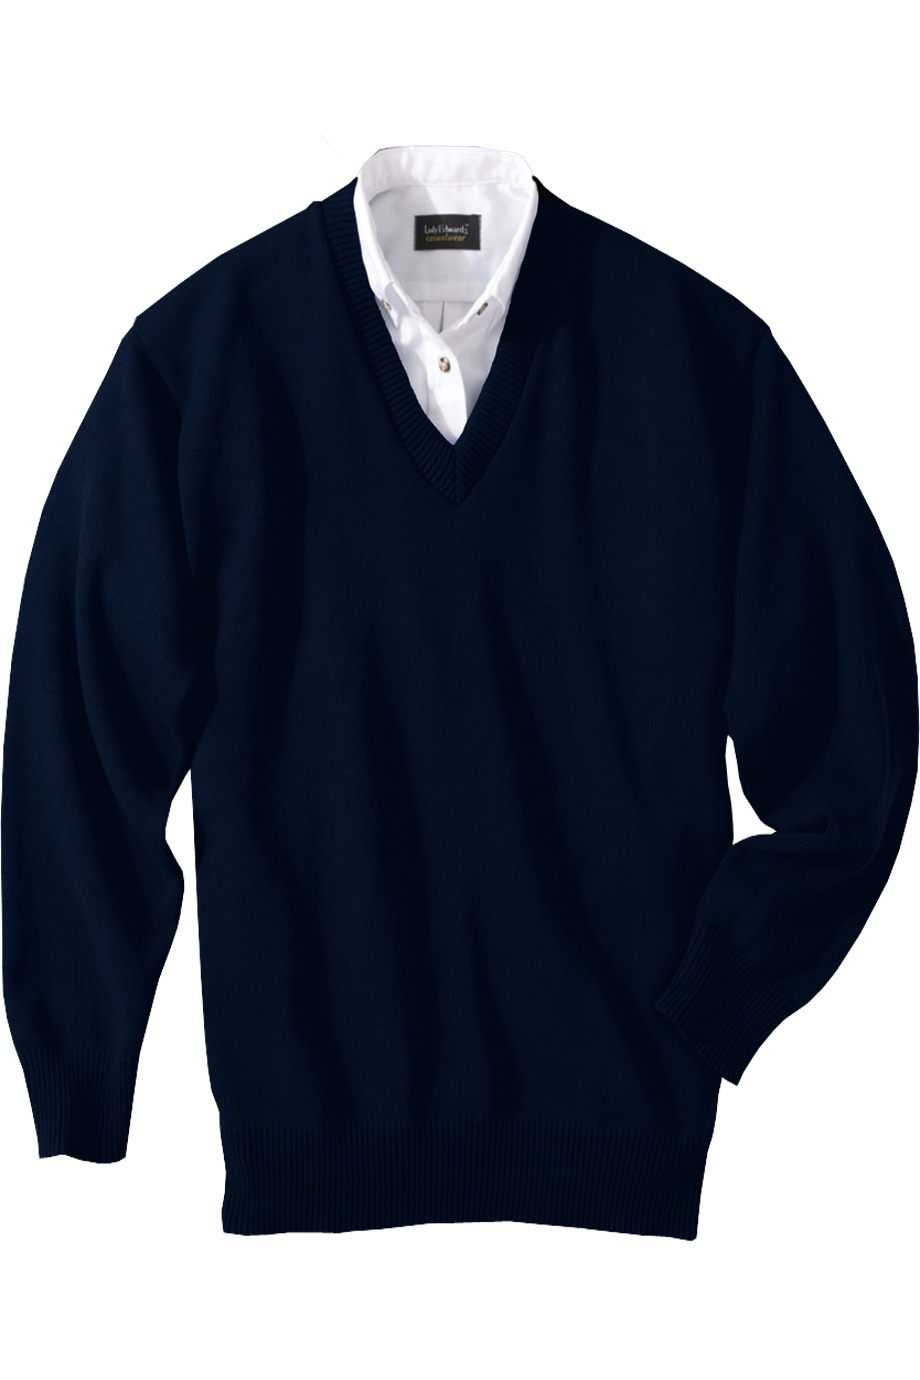 Edwards Garment 790 - Jersey Stitch V-Neck Sweater